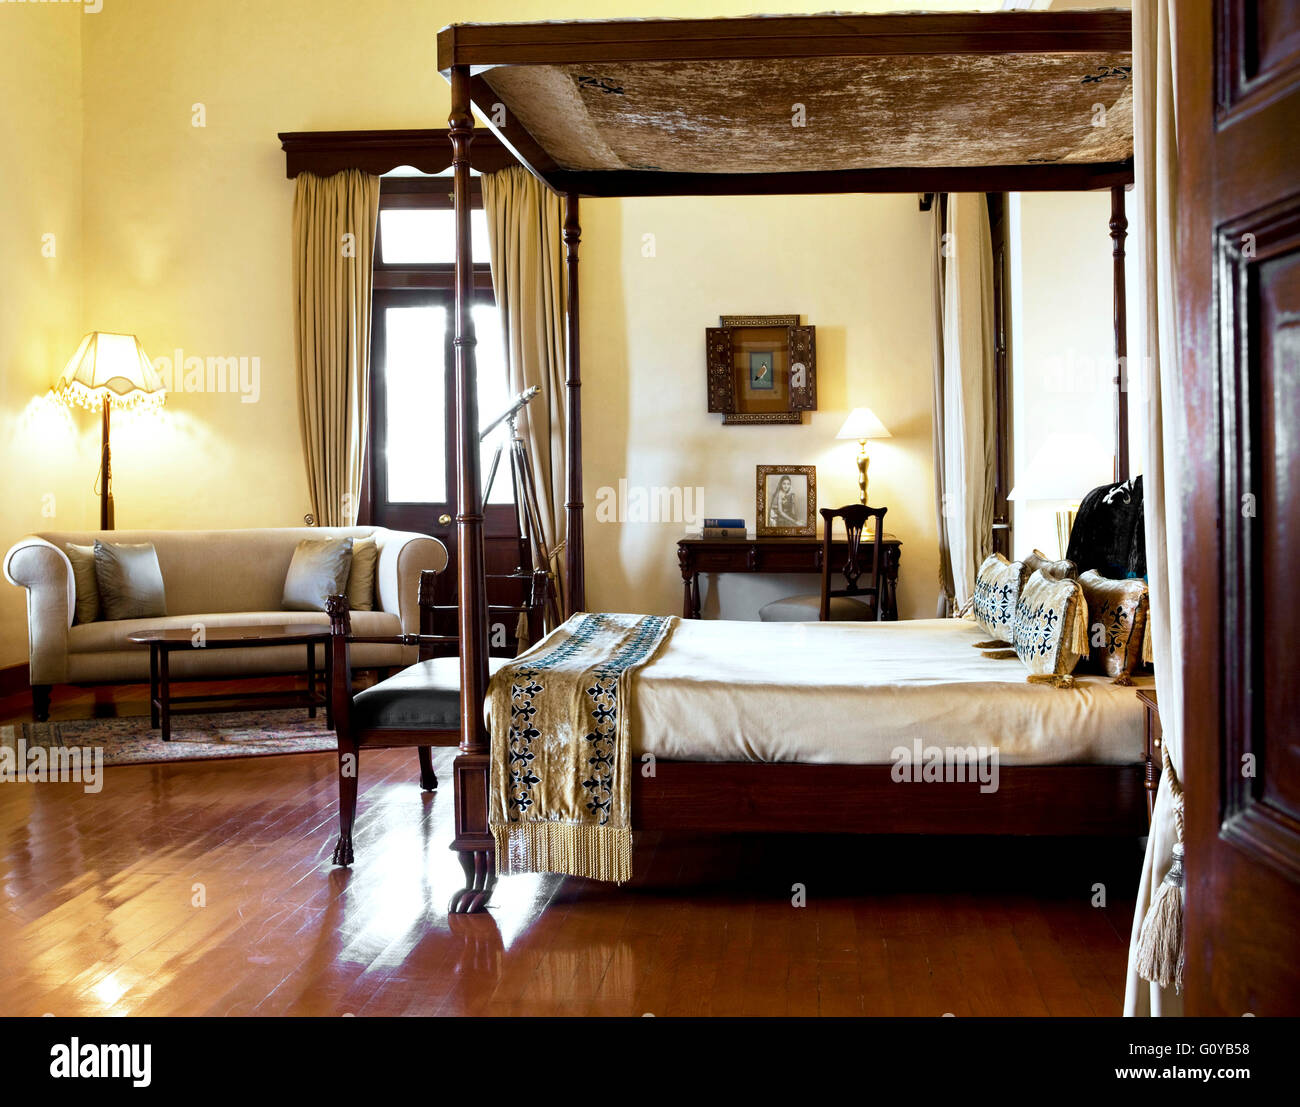 The Viceregal Suite at Ananda in the Himalayas. India - Stock Image